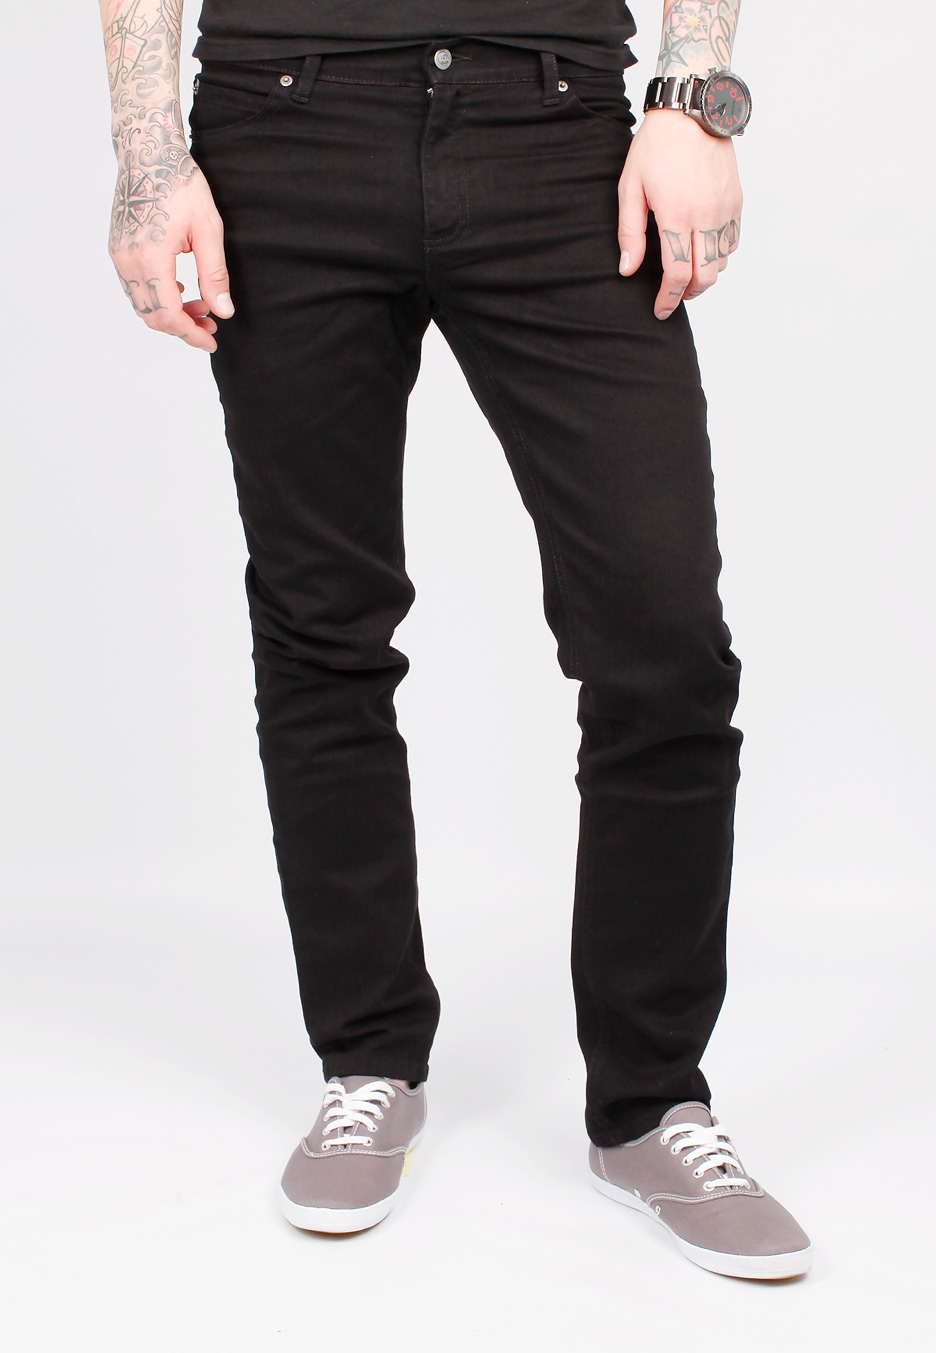 Cheap Monday - Tight OD Black - Jeans - Impericon.com Worldwide